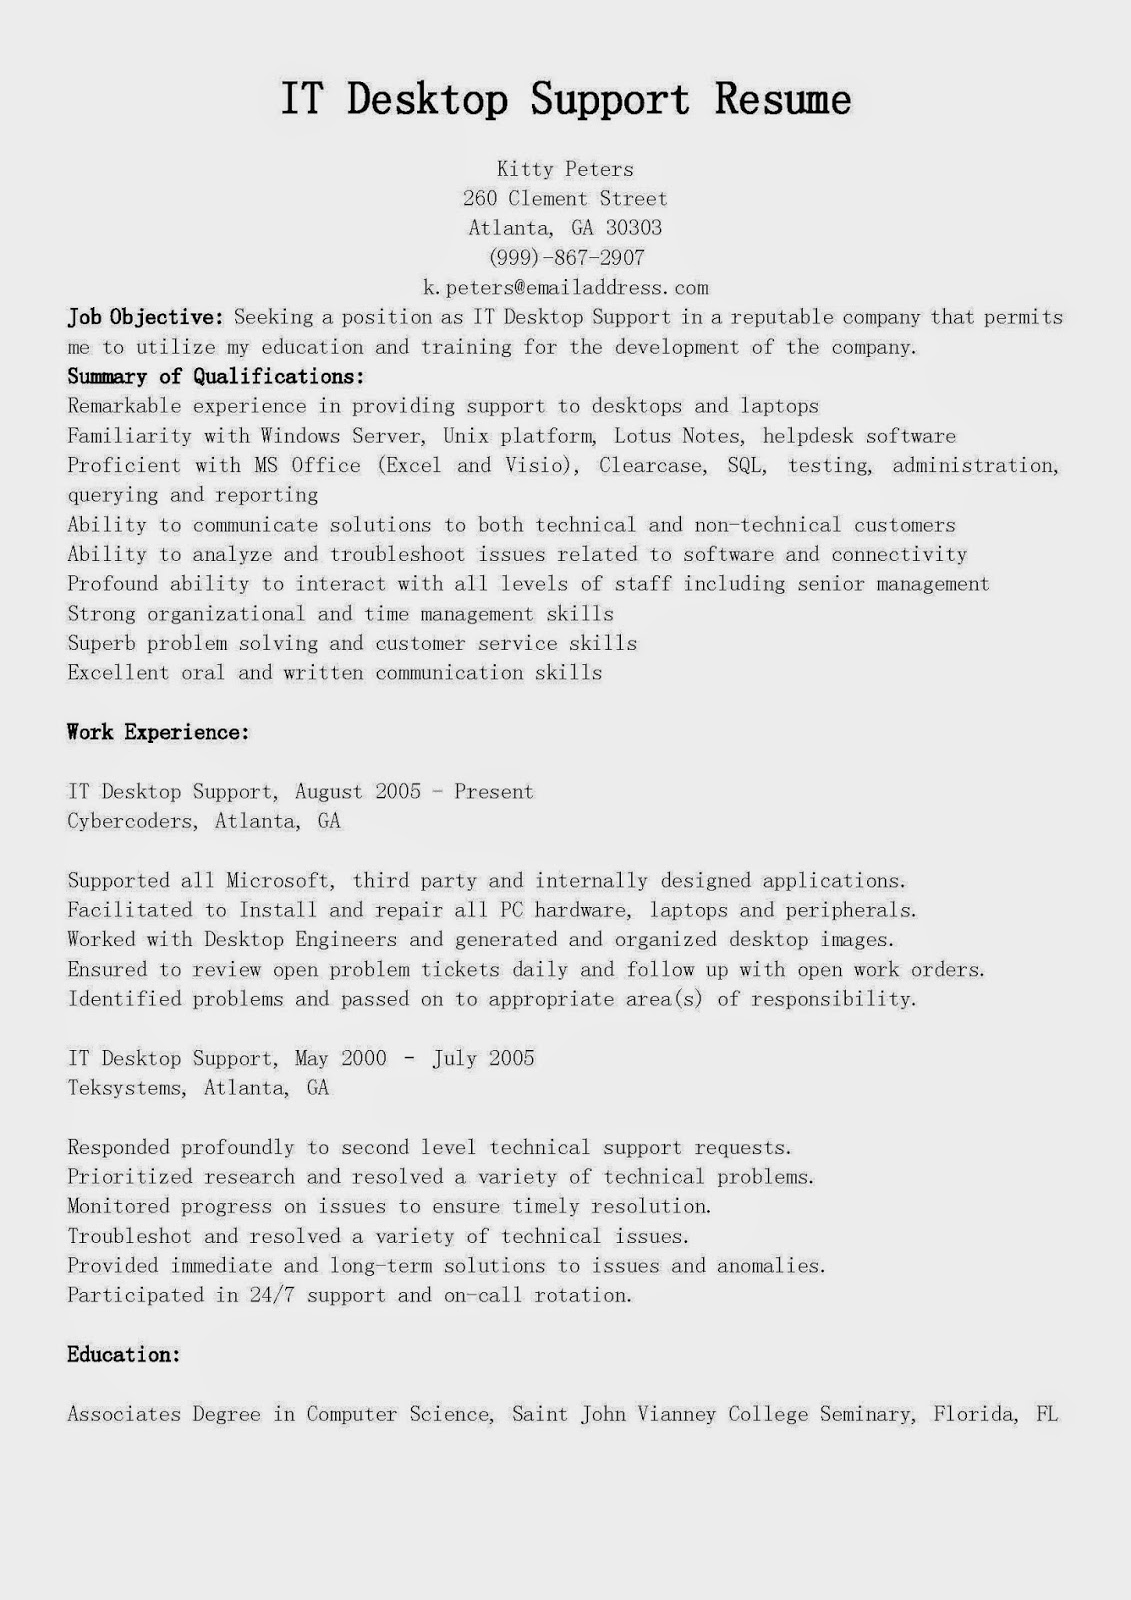 Desktop Support Resume Sample Resume Samples It Desktop Support Resume Sample